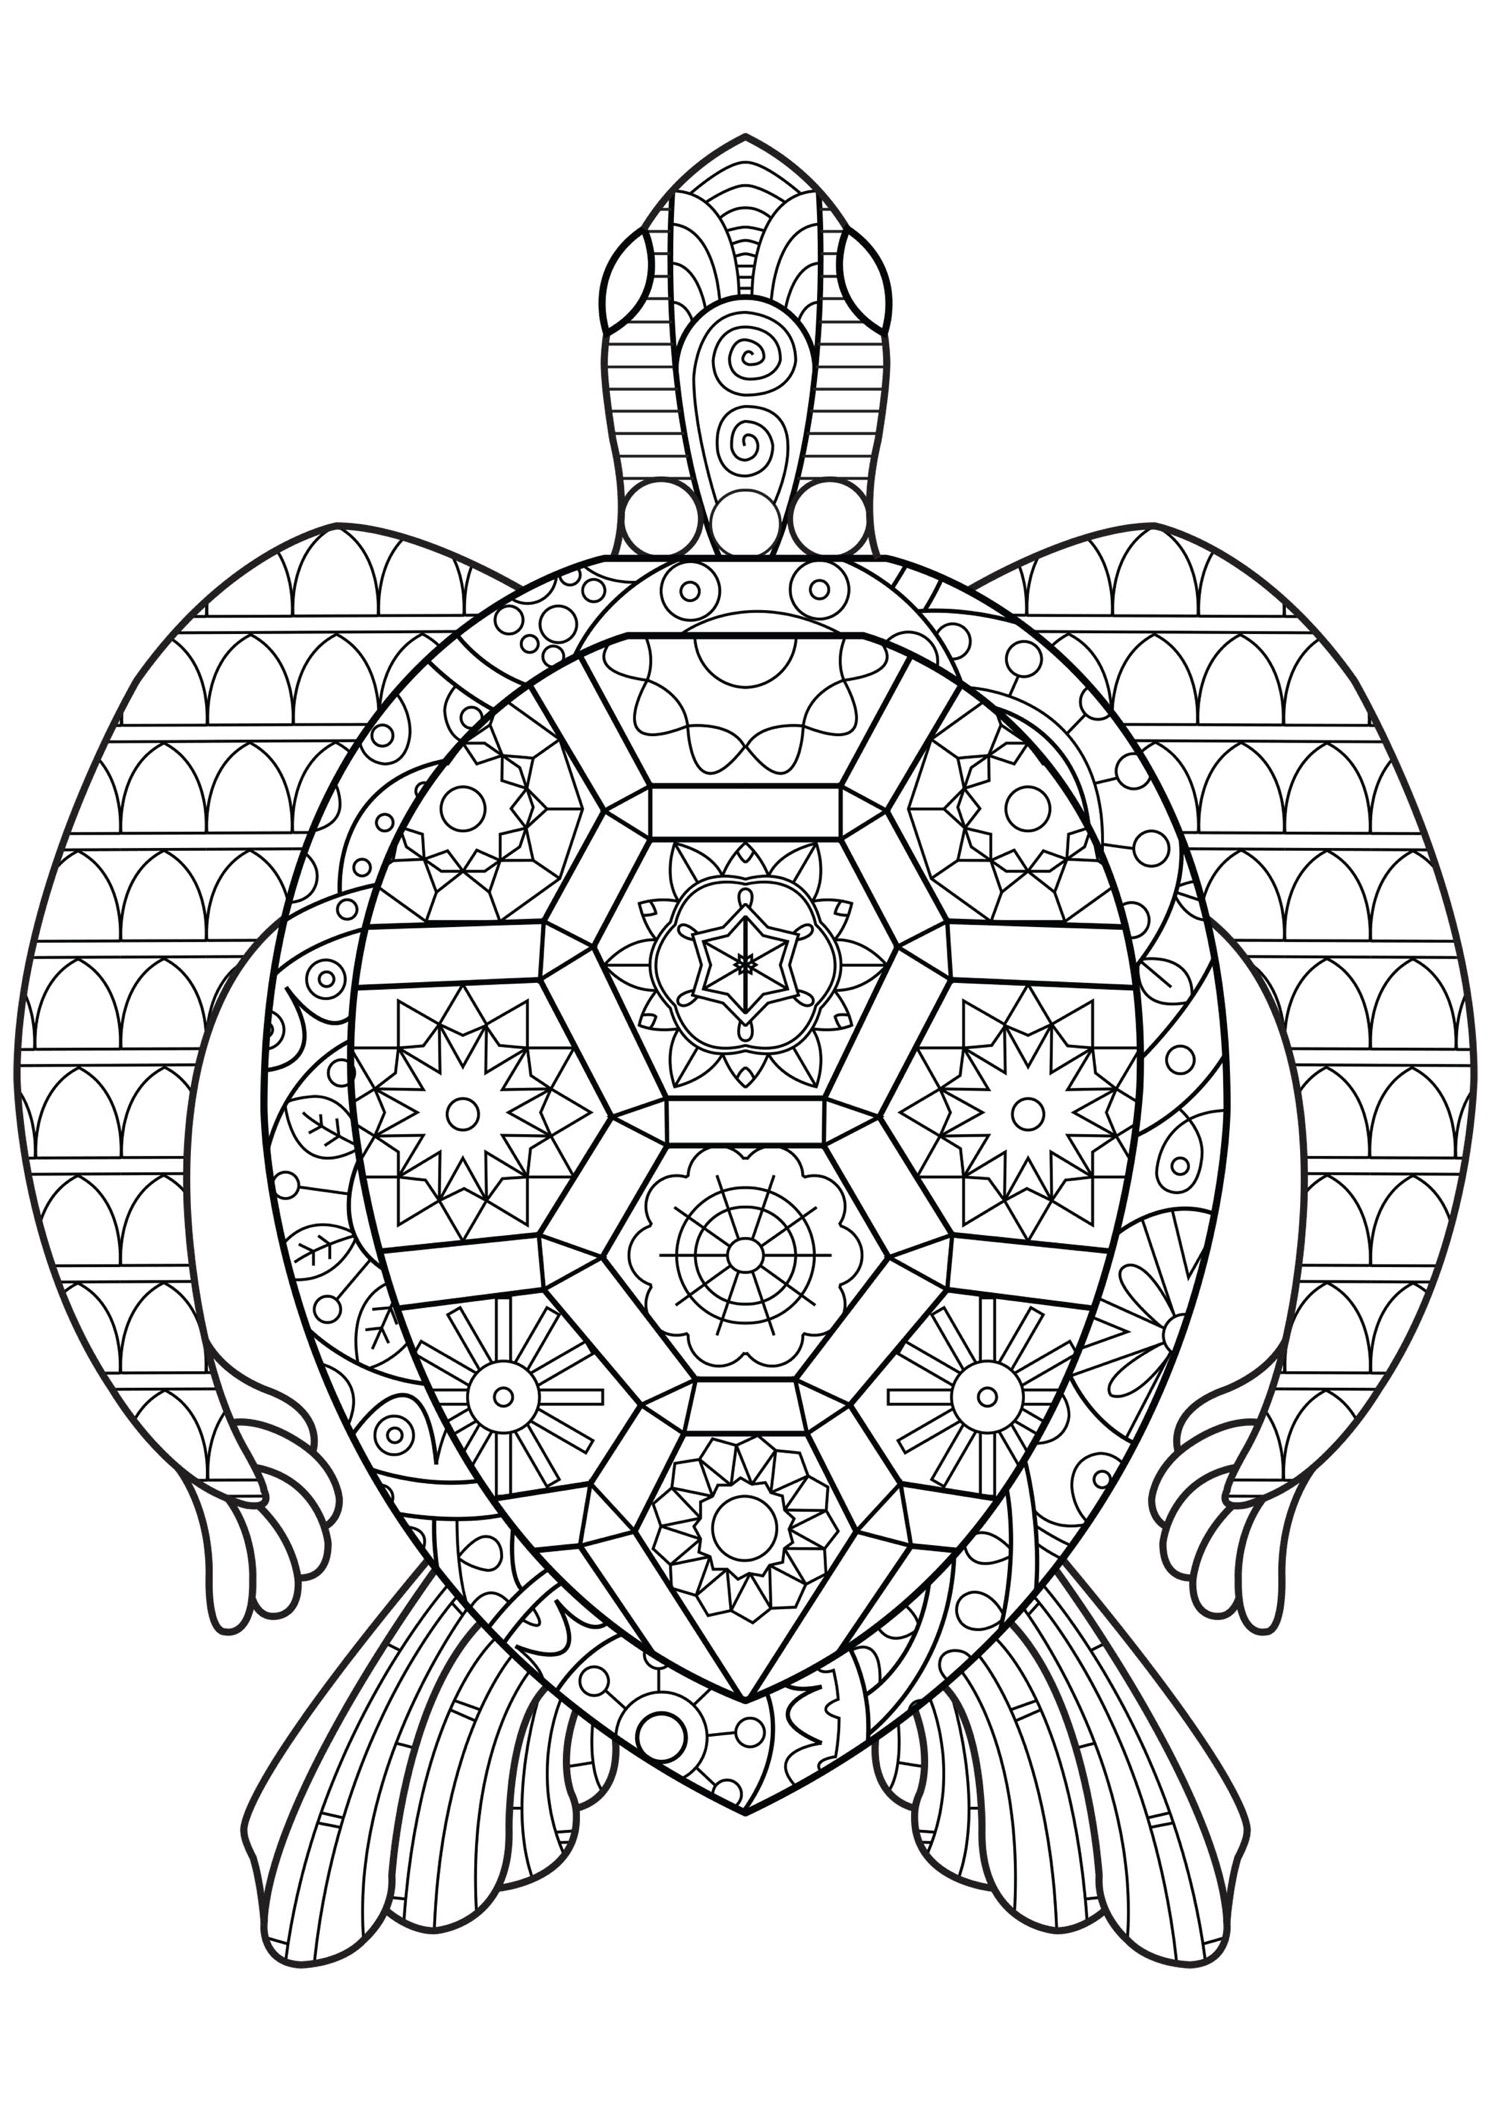 Pin by Mia Bennett on Printables   Turtle coloring pages ...